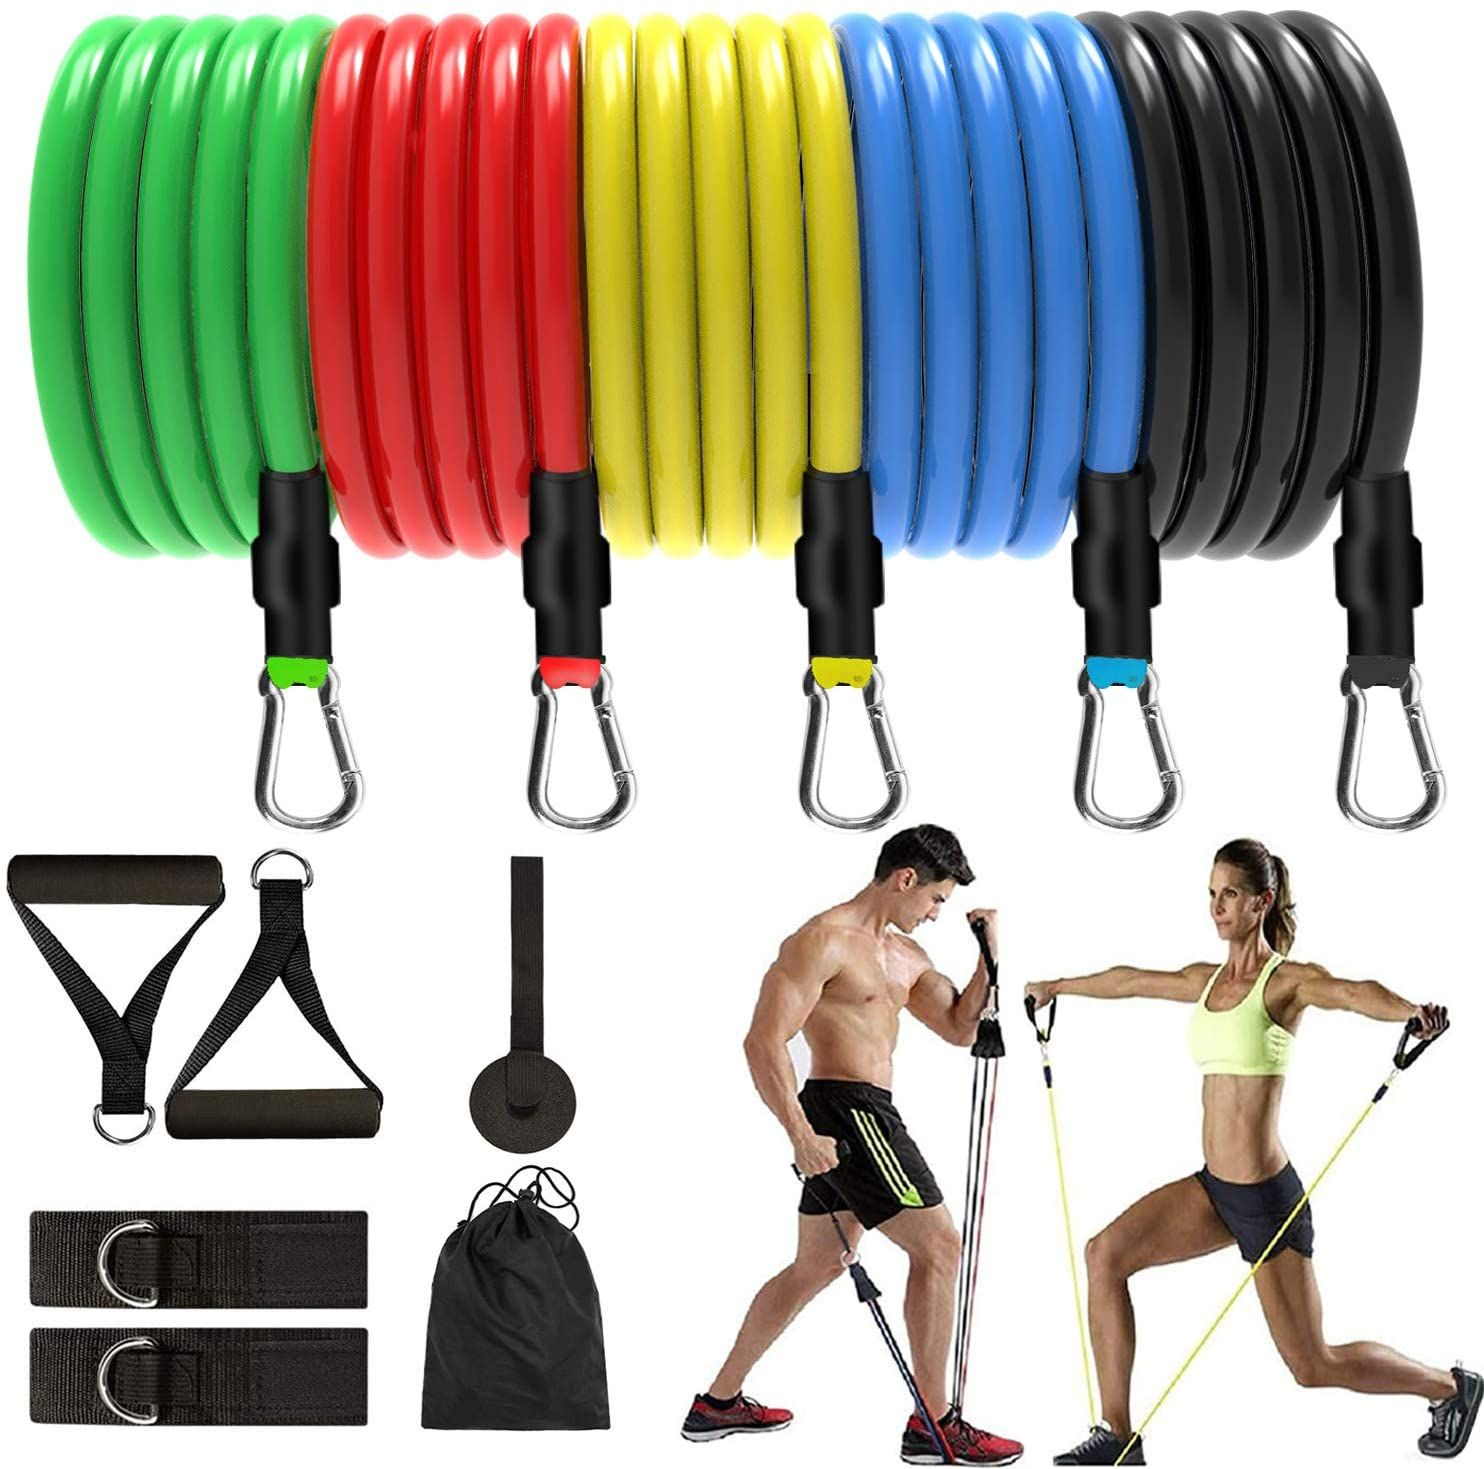 11+ Workout bands with handles ideas in 2021